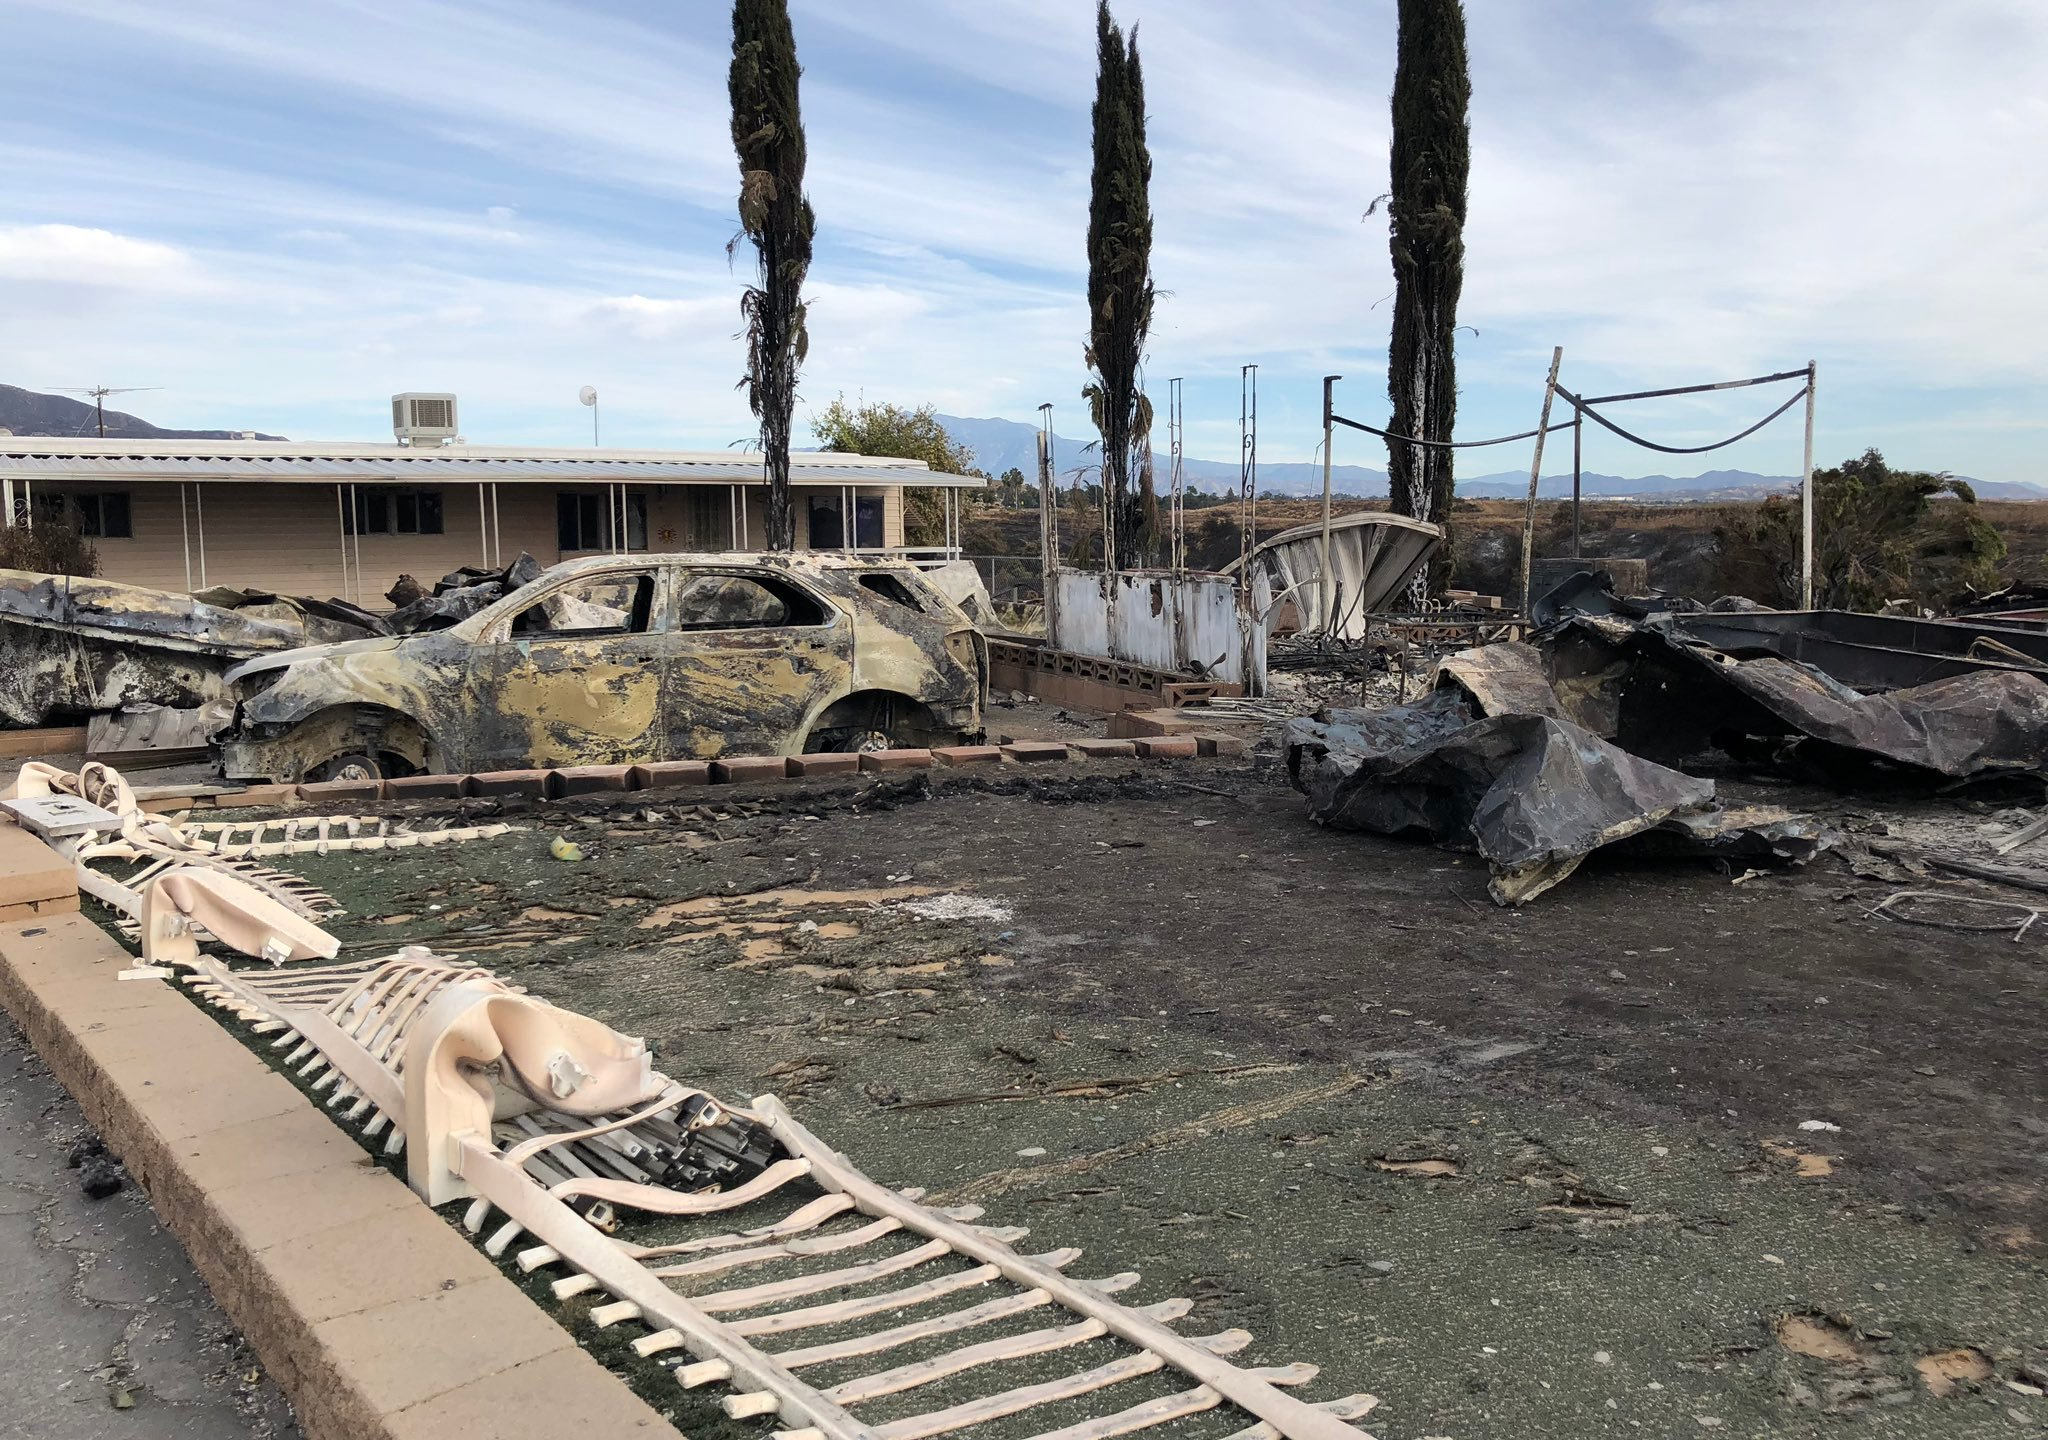 Destroyed property in Calimesa appears in the aftermath of the Sandalwood Fire in a photo released by the California Department of Insurance on Oct. 16, 2019.